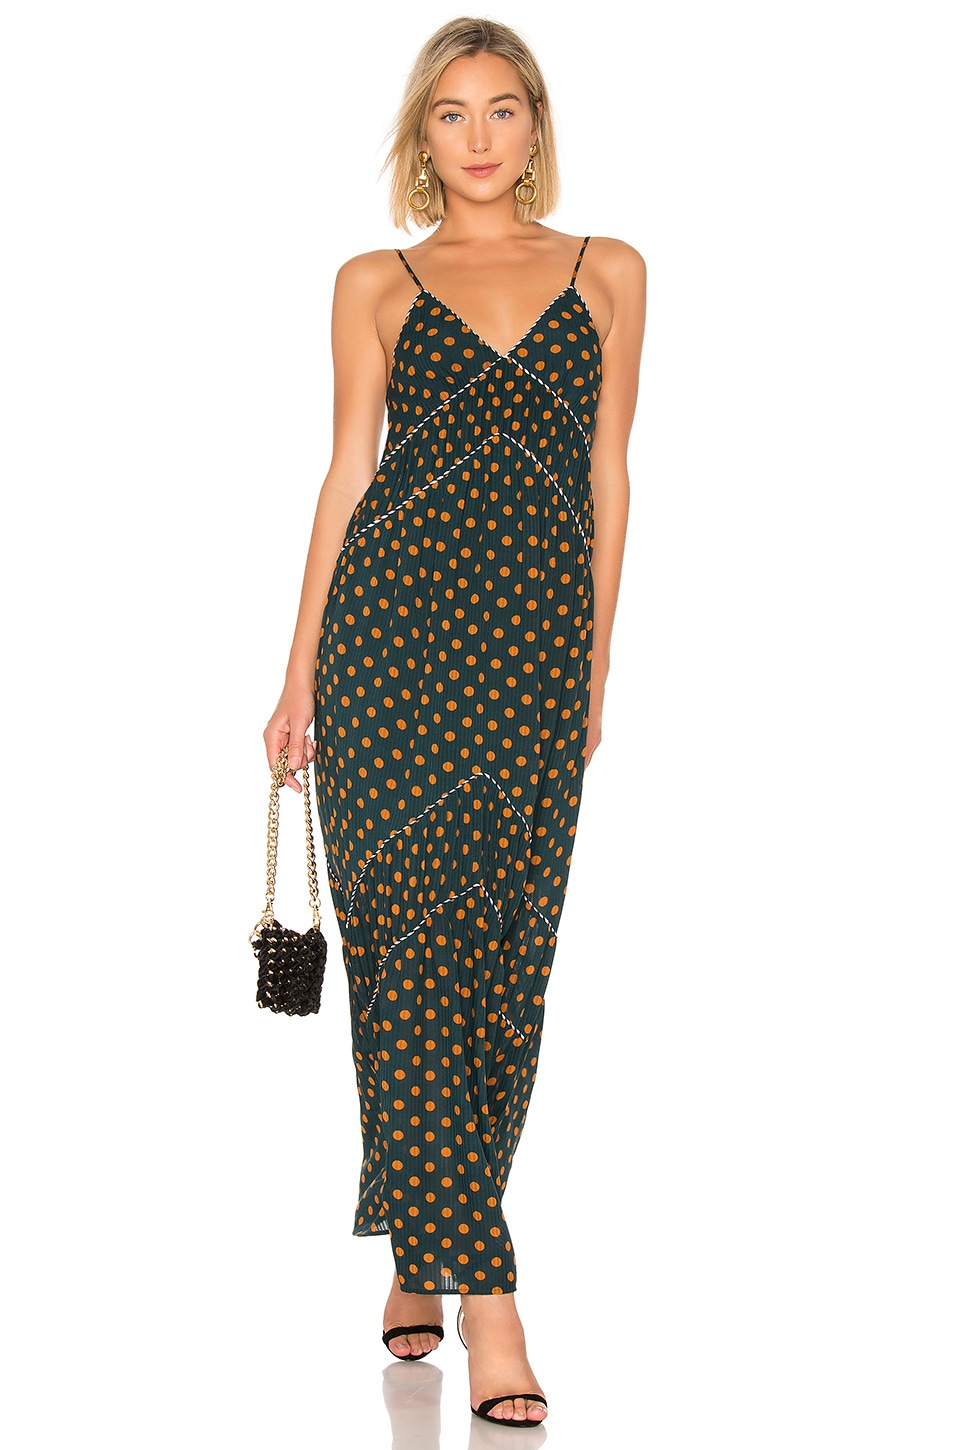 House of Harlow 1960 x REVOLVE Russo Maxi in Deep Turquoise